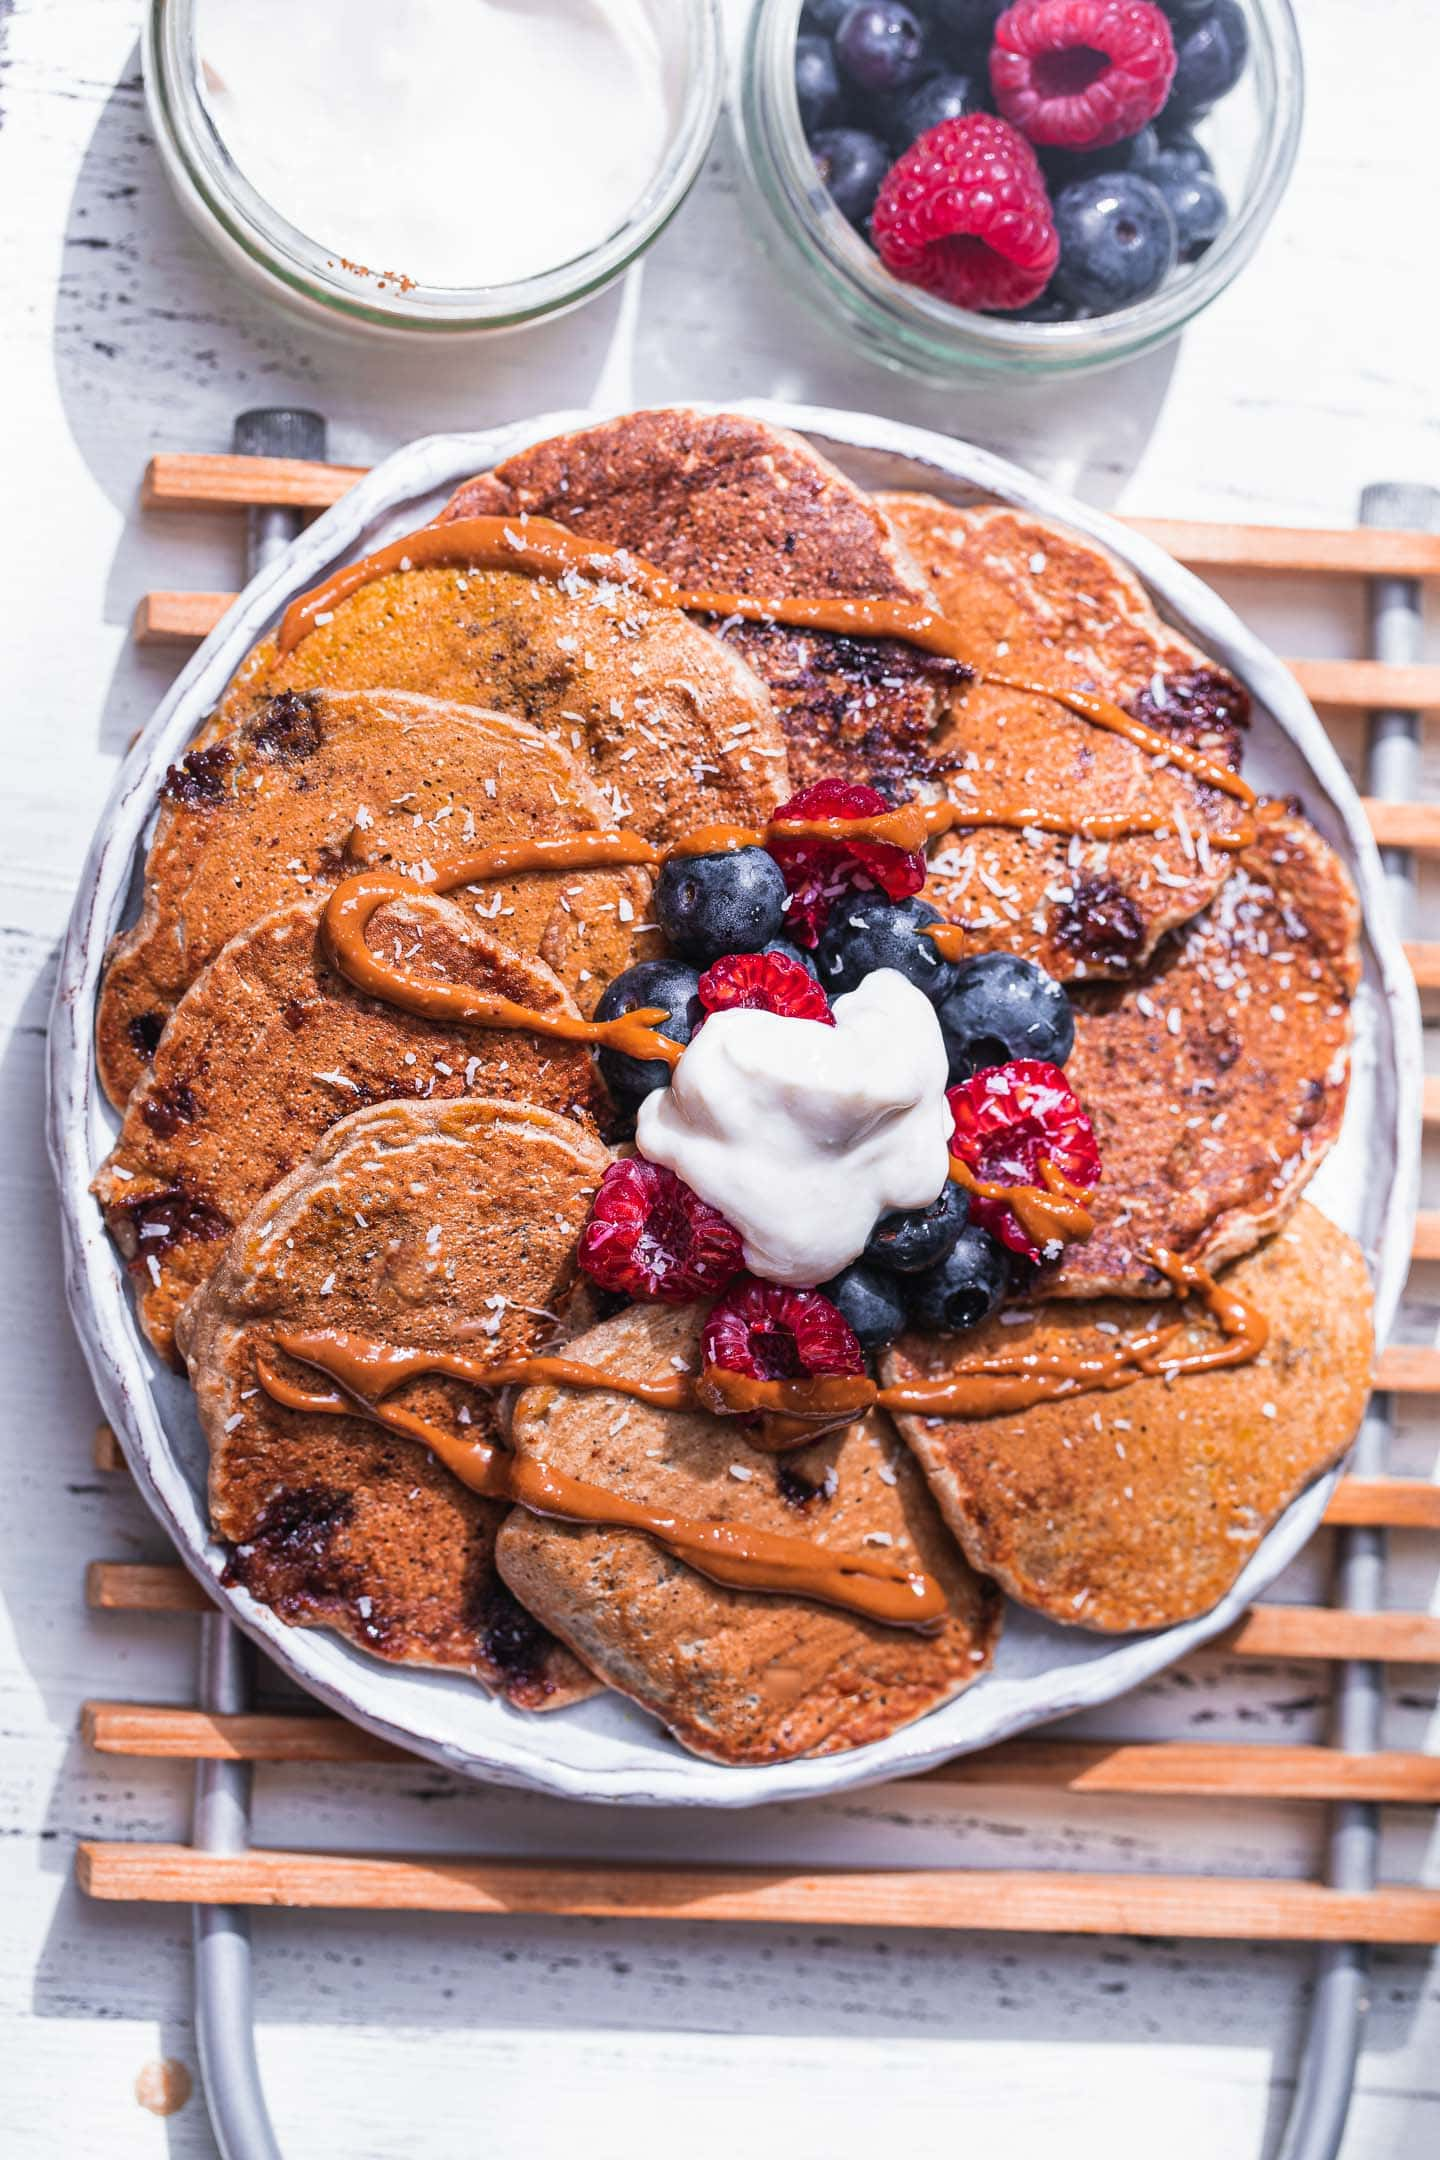 Vegan pancakes with chocolate chips and berries